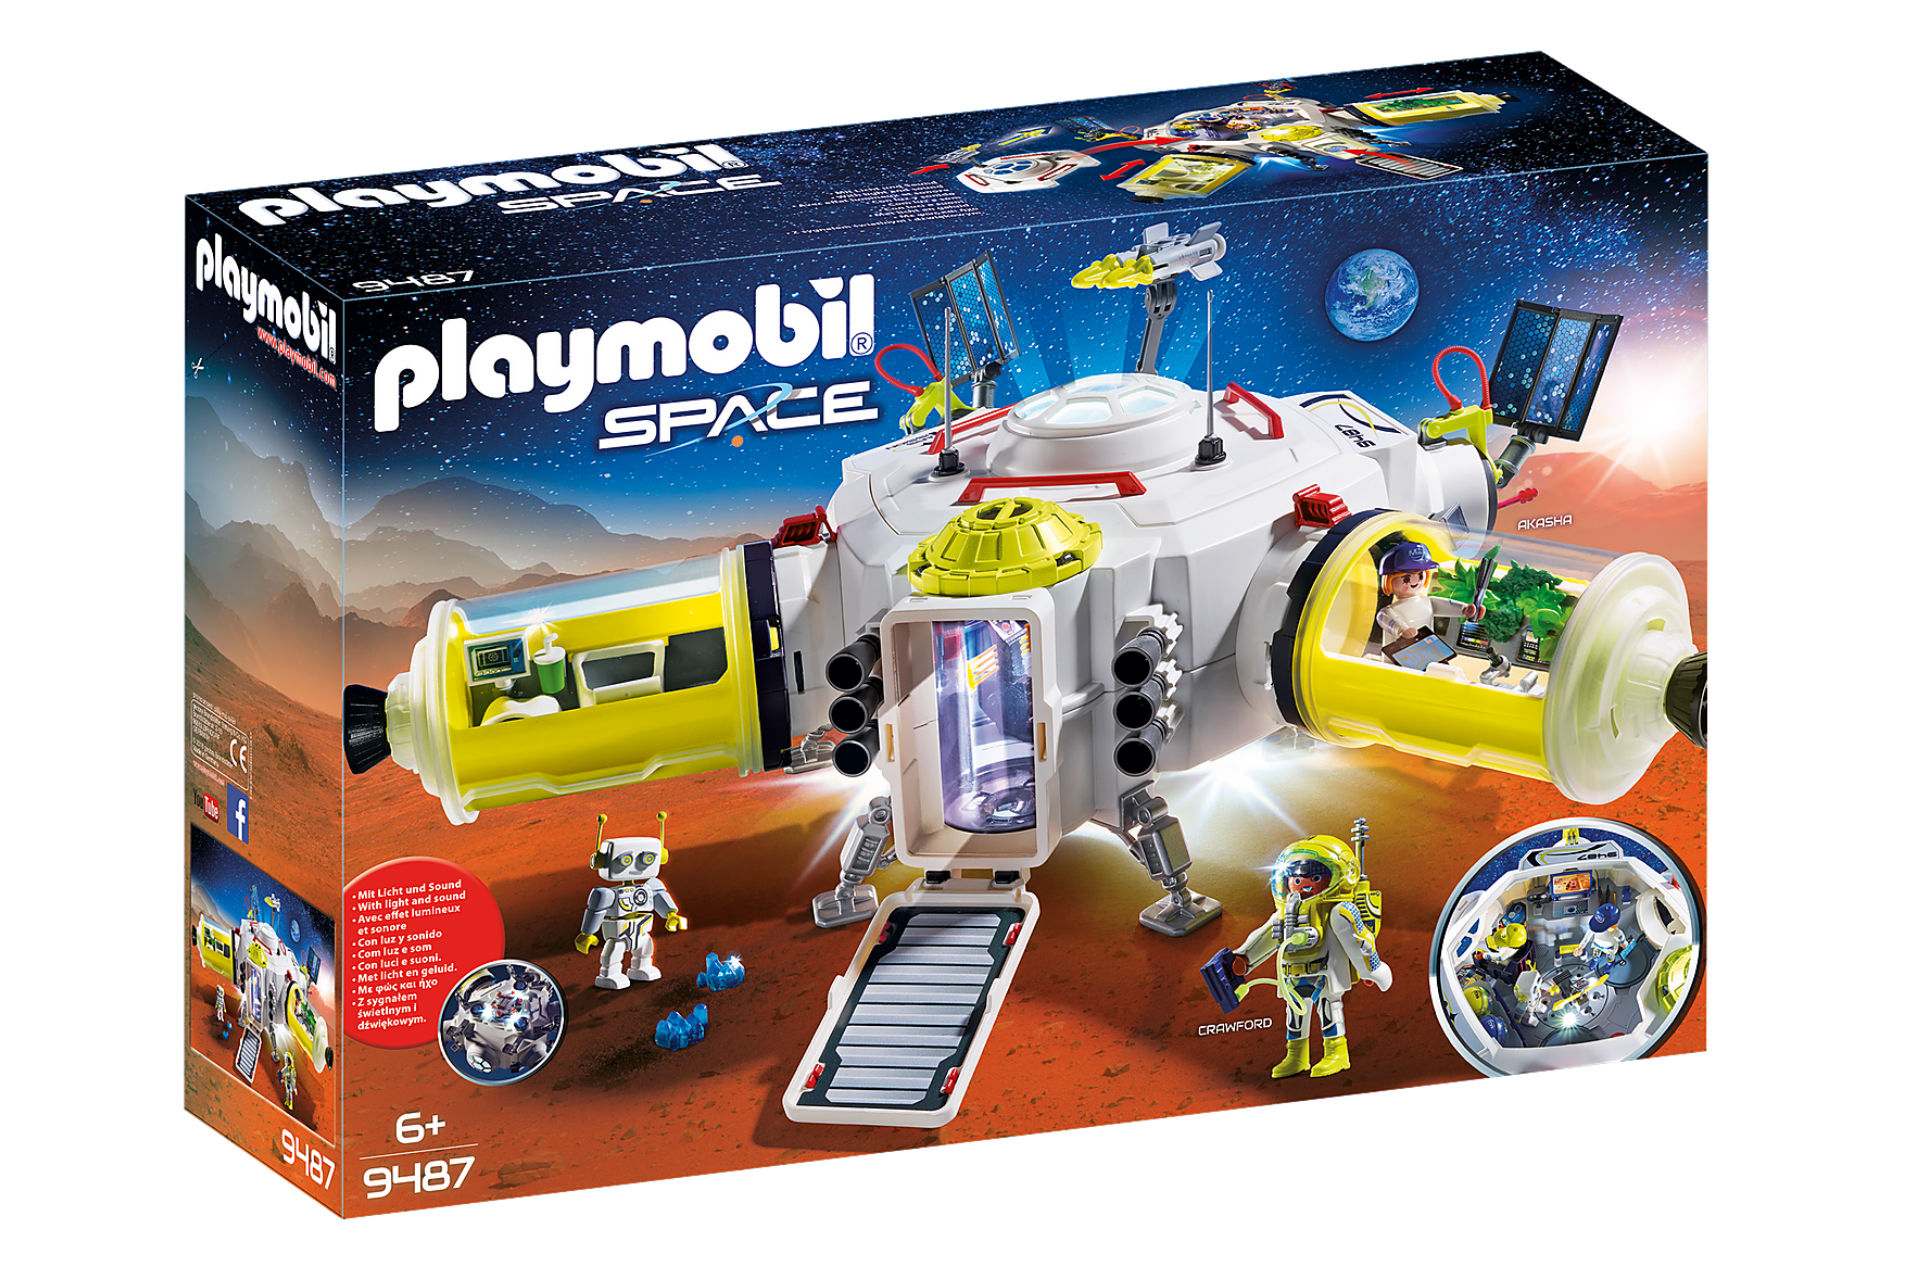 box of imaginary play set that is Mars-themed